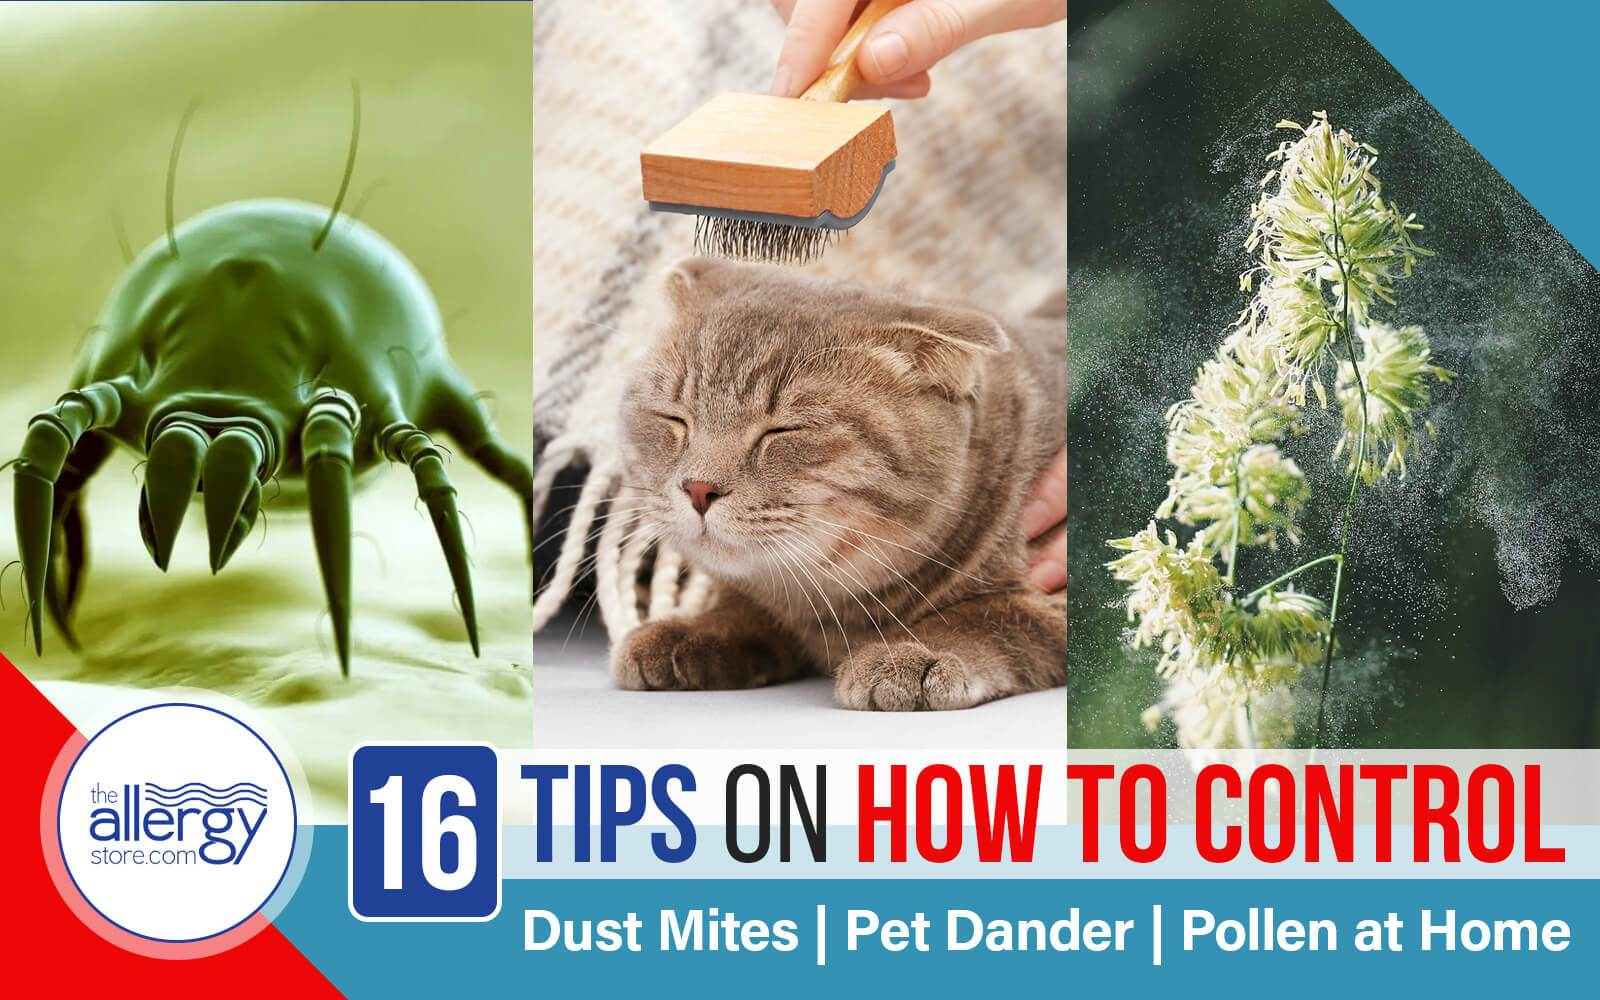 16 Tips on How to Control Dust Mites, Pet Dander, Pollen at Home